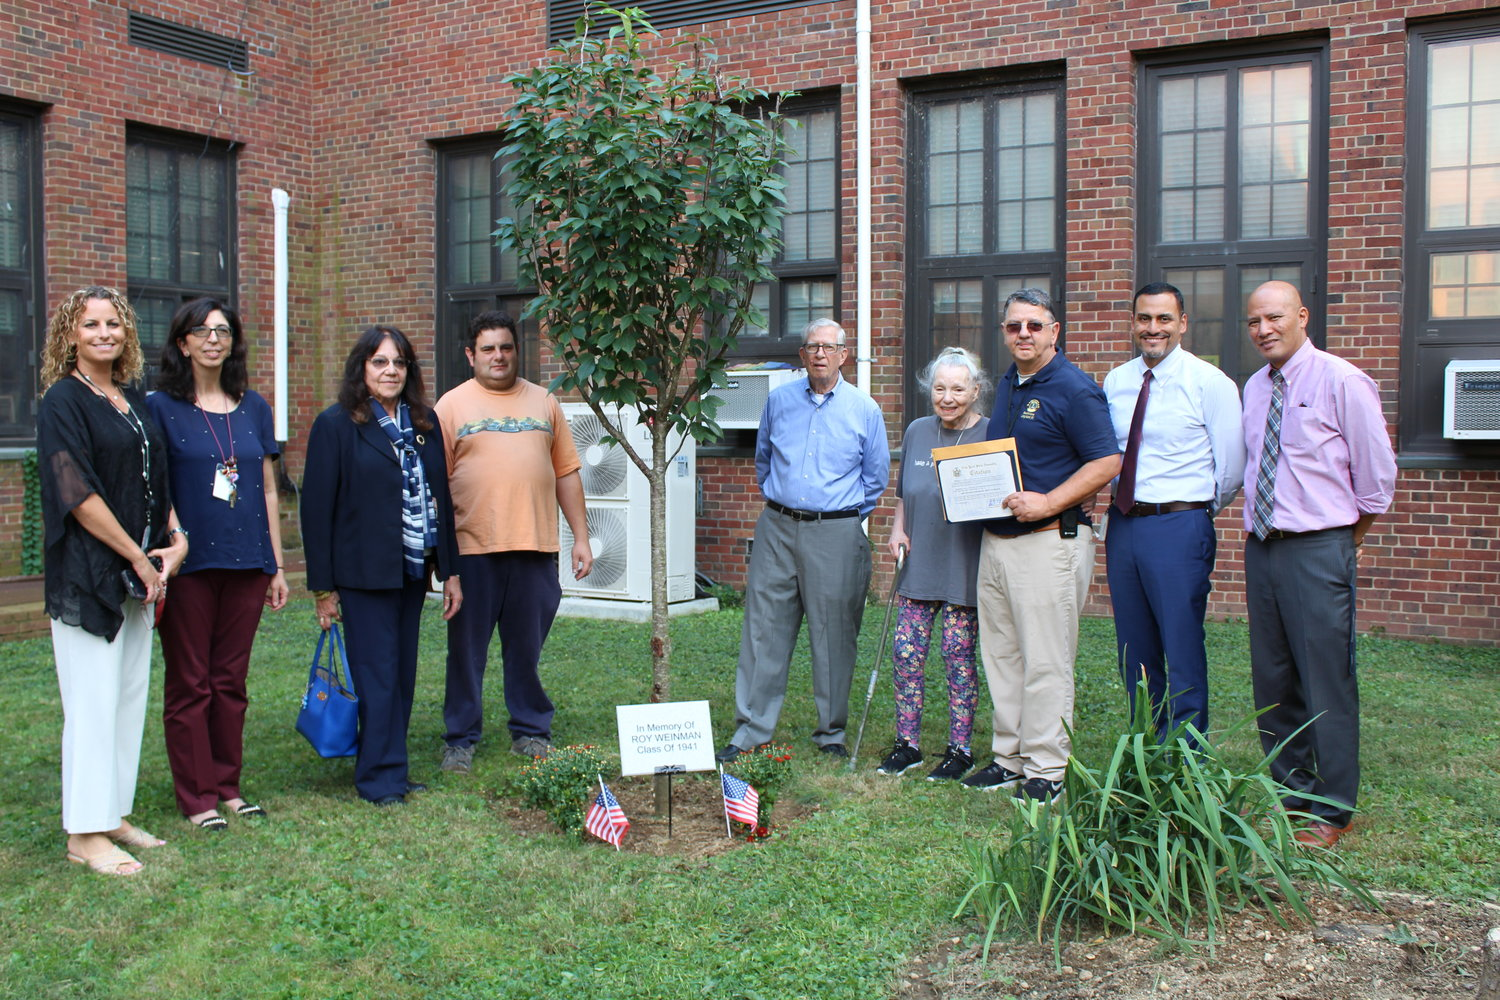 The Mepham High School community honored late Bellmore man-about-town Roy Weinman on Oct. 3 with a tree in the school's courtyard. Above, from left, were Mepham Assistant Principal Jennifer Carne, Leo Club adviser and Lion Josephine Parlagreco, Lions Michelle Gagnone and Jack Skelly, Myrna Weinman, Lions Club member John Scalesi, Mepham Principal Eric Gomez and Assistant Principal Andrew Del Rosario.